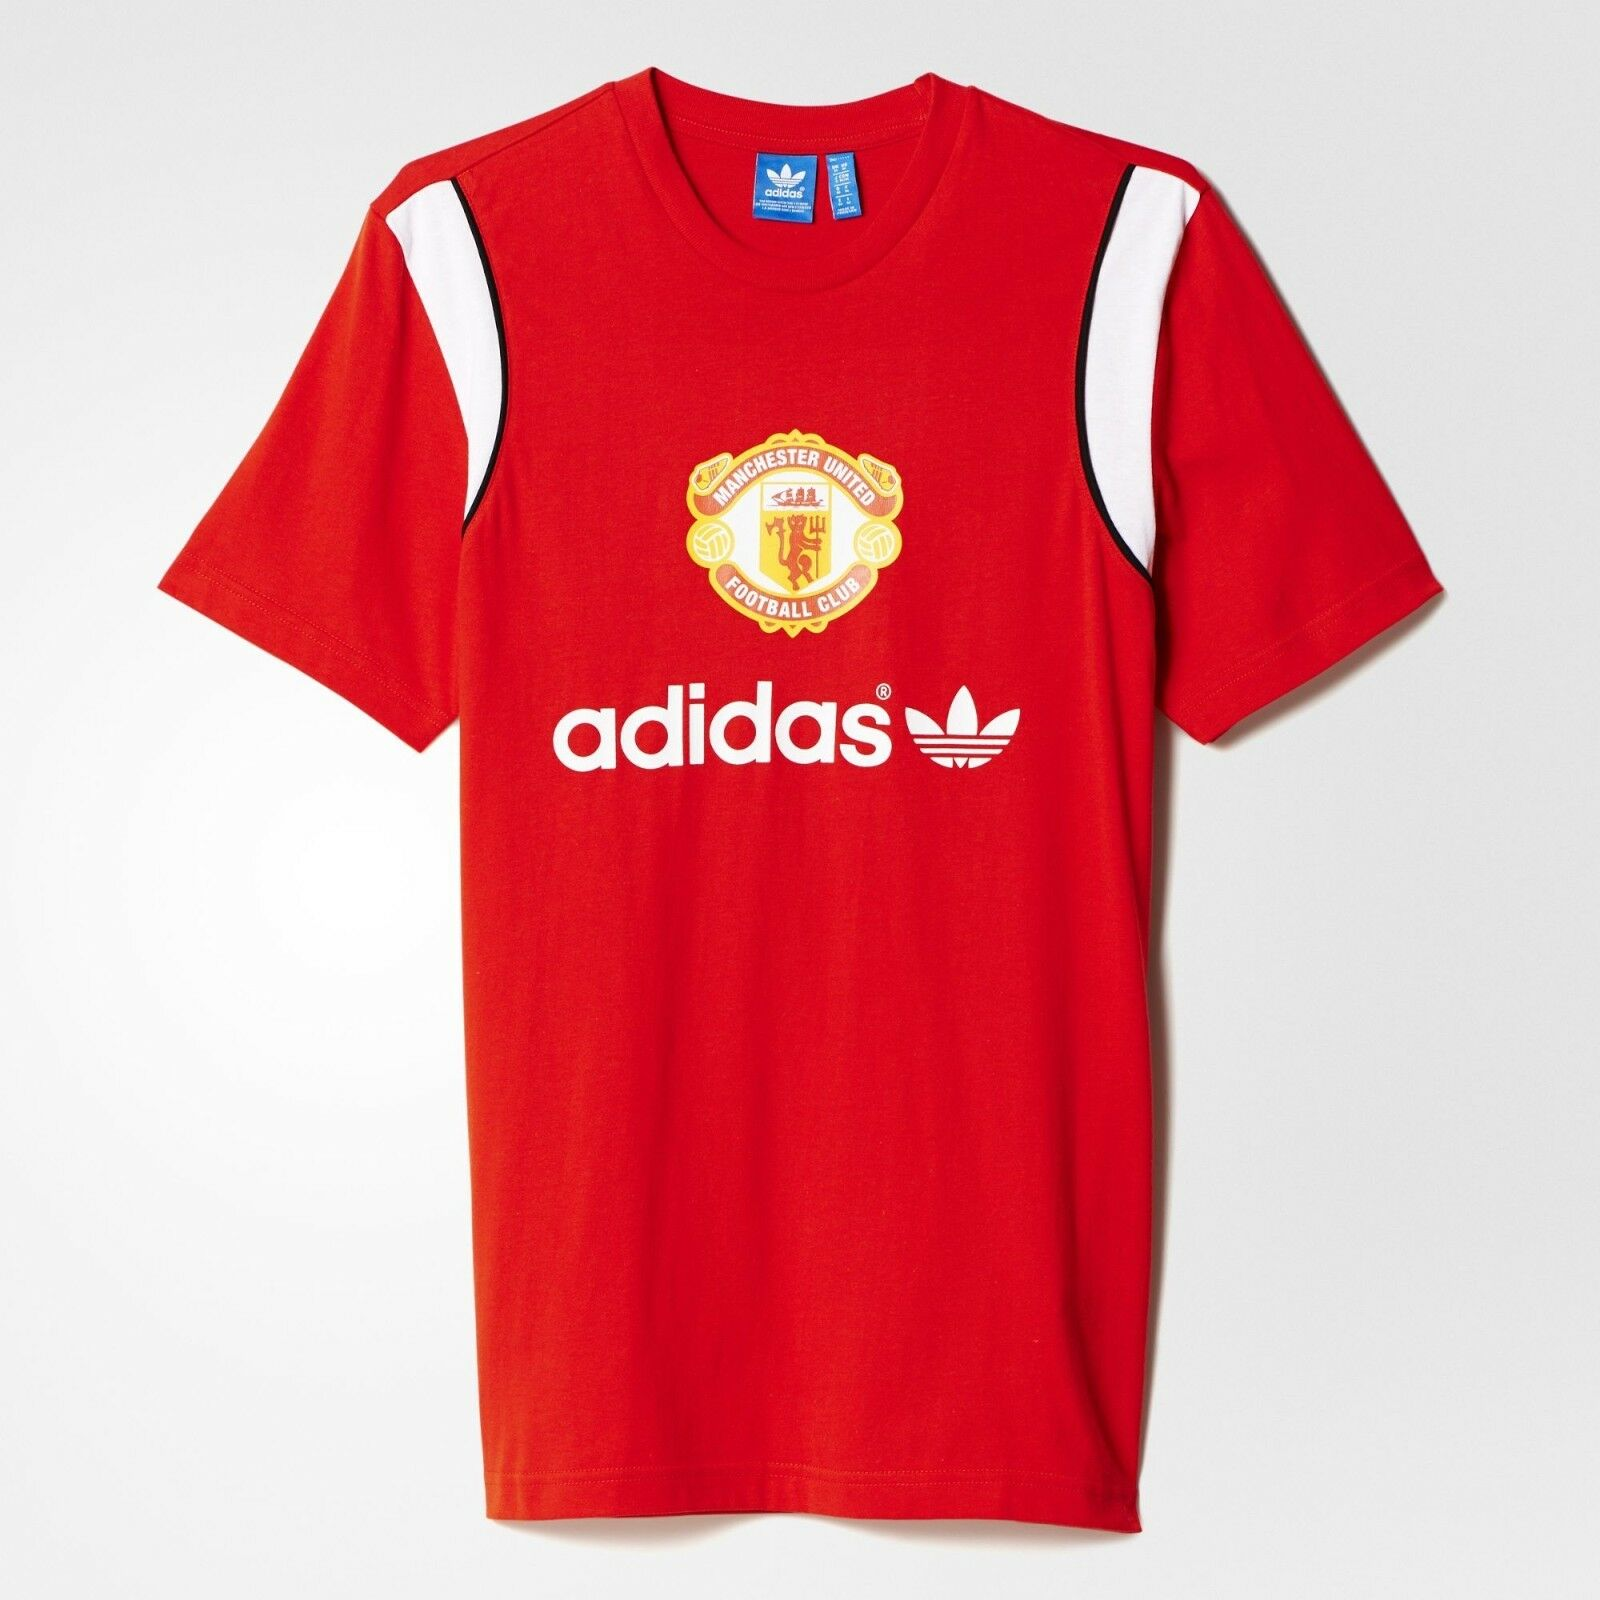 ADIDAS Originals M Manchester United Rosso T shirt Taglia UK